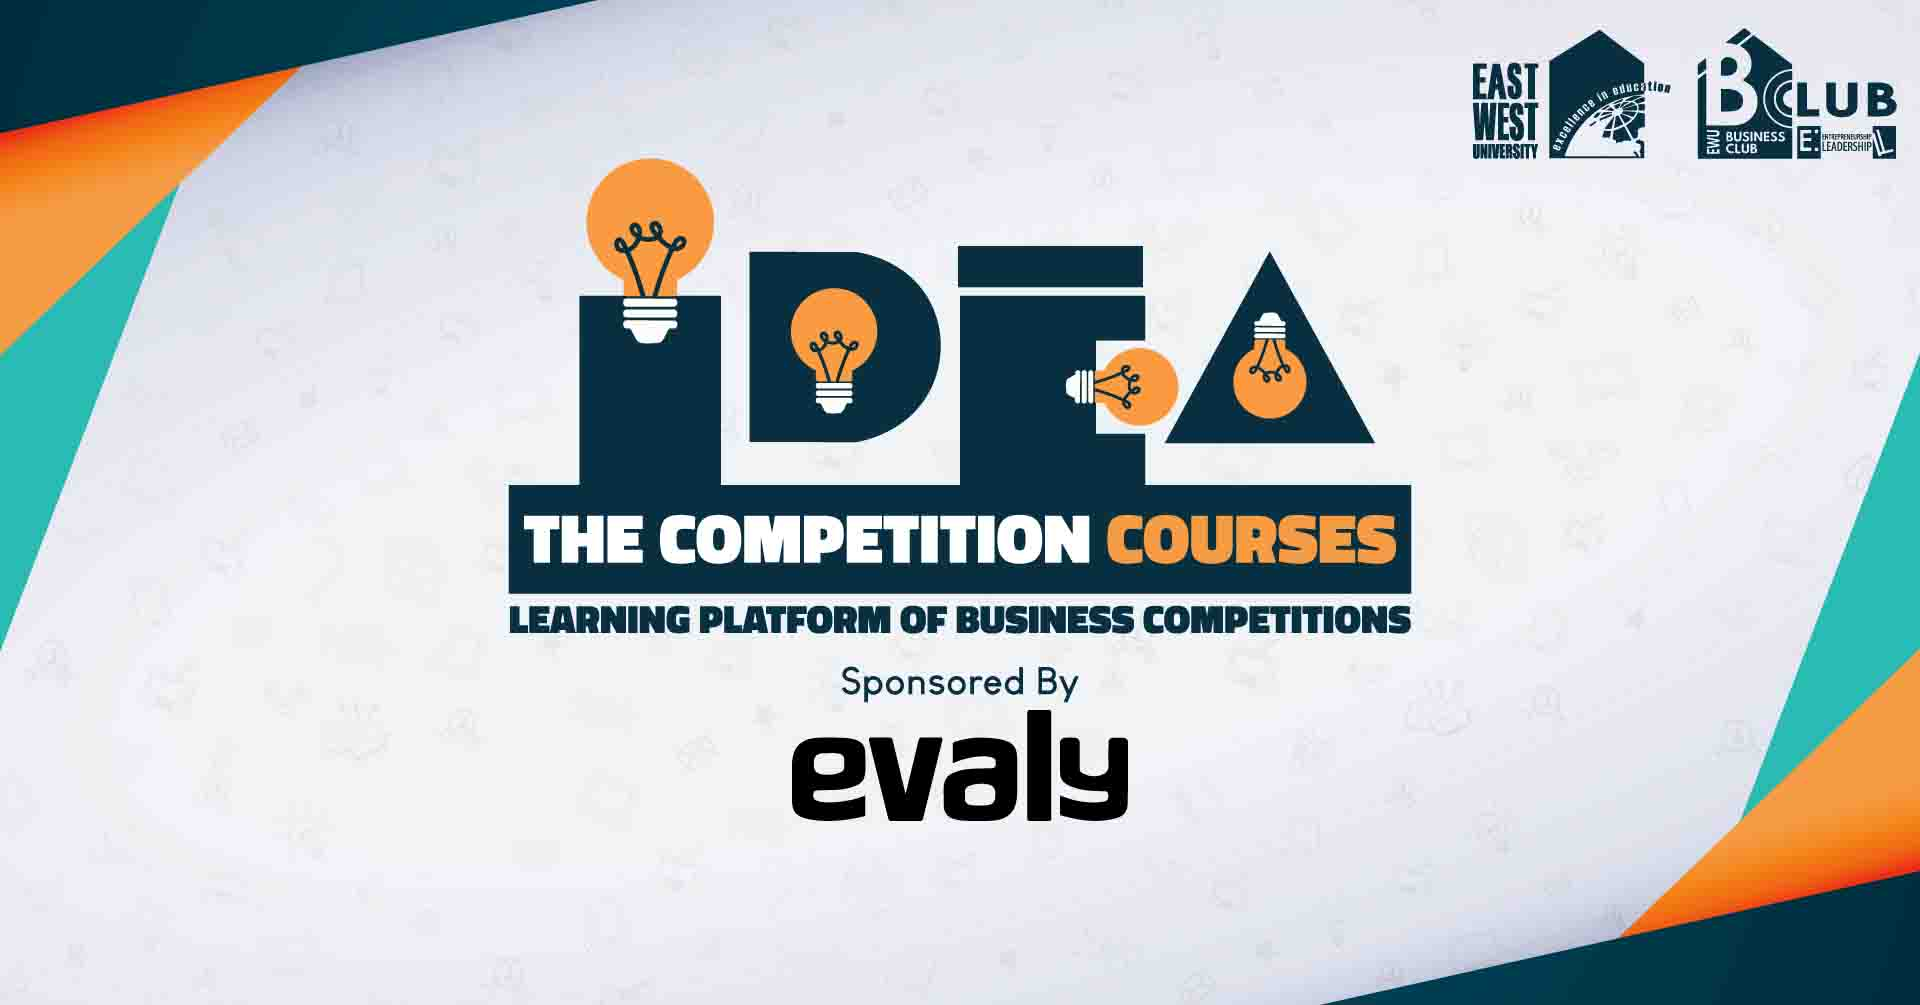 The Competition Courses: A Lucrative Learning Platform for Students of EWU